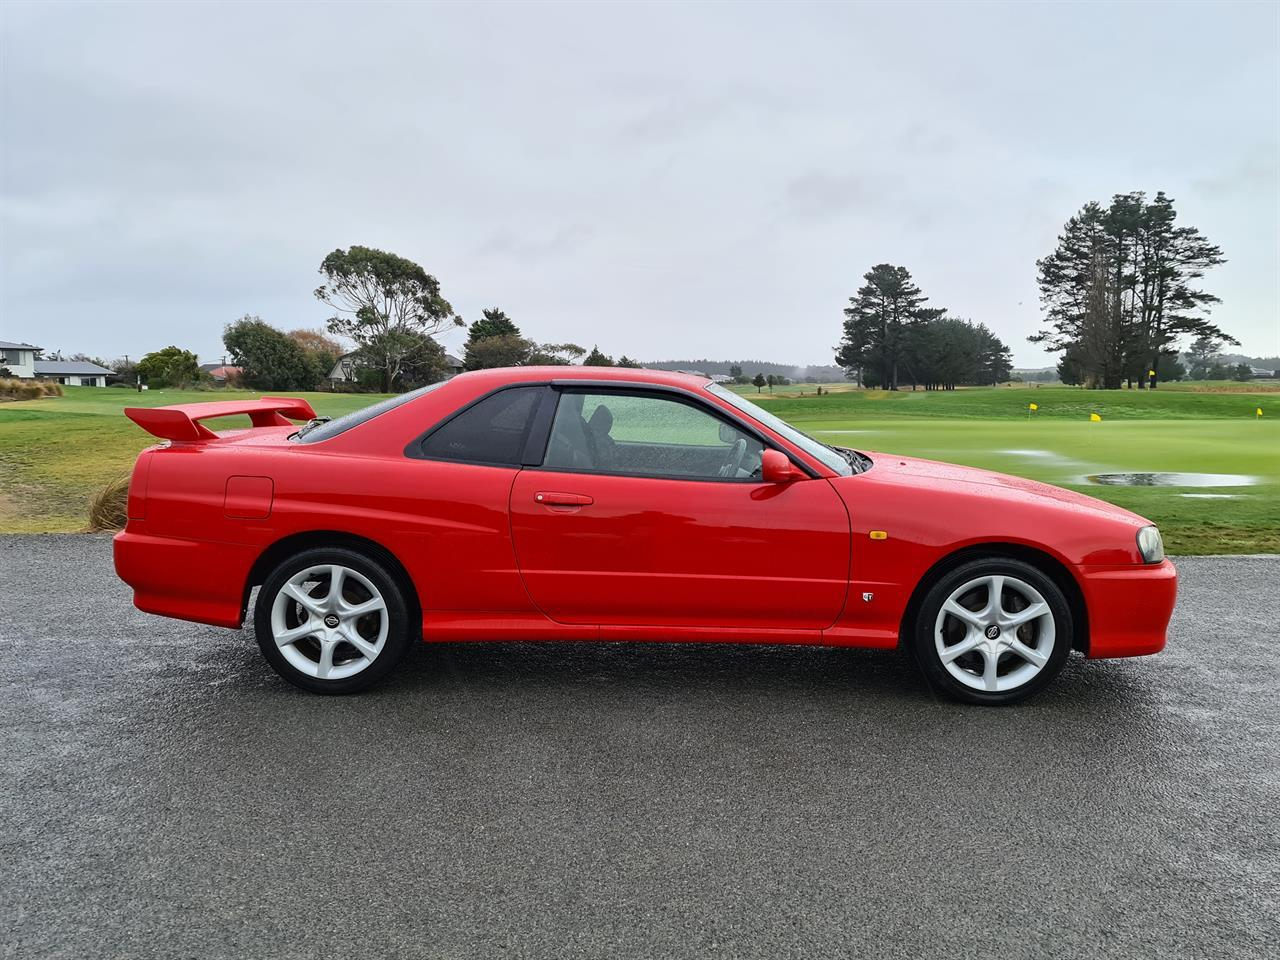 image-5, 2000 Nissan Skyline COUPE 25 GT TURBO at Christchurch